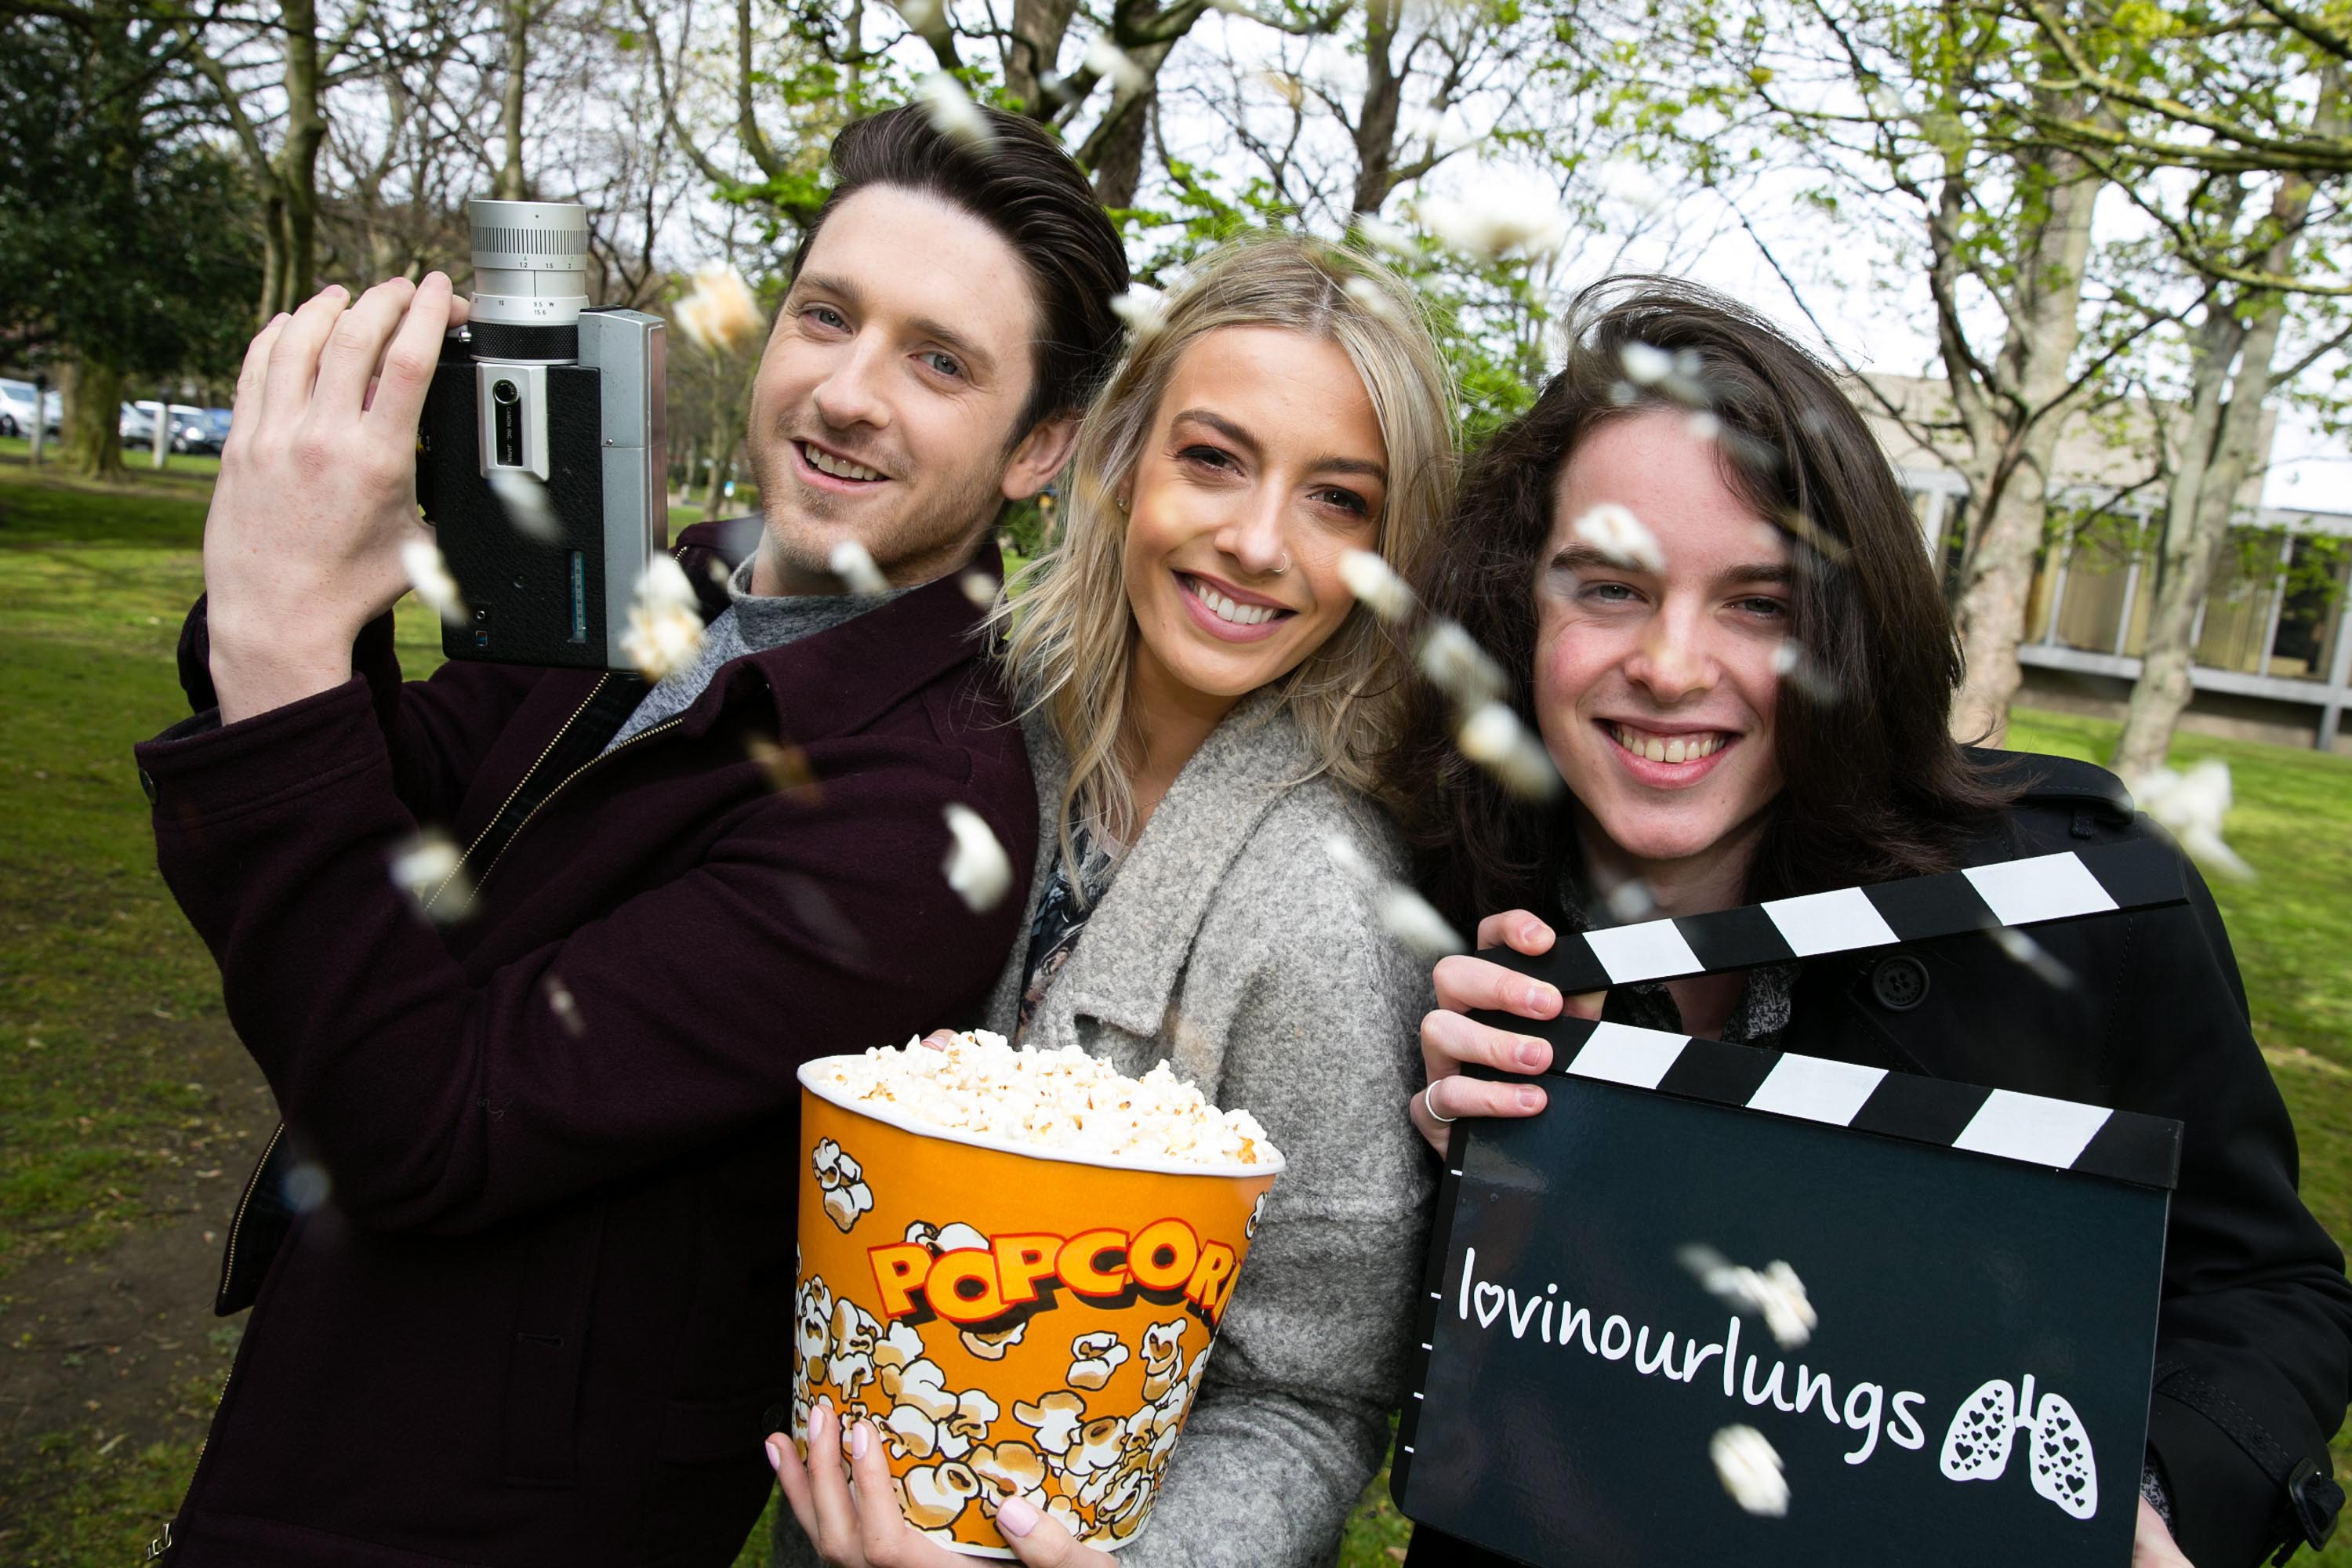 NO FEE FOR REPRO Stephen Byrne, RTÉ Two's Two Tube, Bláthnaid Treacy, RTÉ Two's Two Tube and Ferdia Walsh-Peelo, Sing Street star pictured at the launch of the Lovin' our Lungs Movie competition by the Irish Lung Health Alliance, a coalition of 17 charities, in partnership with Foróige, the national youth development organisation. The competition, which is supported by GSK, was launched against a backdrop of lung disease being the most common health condition in young adults aged 18 to 24 years. The aim is to highlight among teenagers the importance of lung health for a full and active life. The competition is open to teenagers between 12 and 18 years, with the winning entry being televised on RTÉ Two's Two Tube and scooping a thrilling adventure experience. The closing date is Sunday May 22 2016 and full details can be found at www.lovinourlungs.ie Pic Shane O'Neill Photography